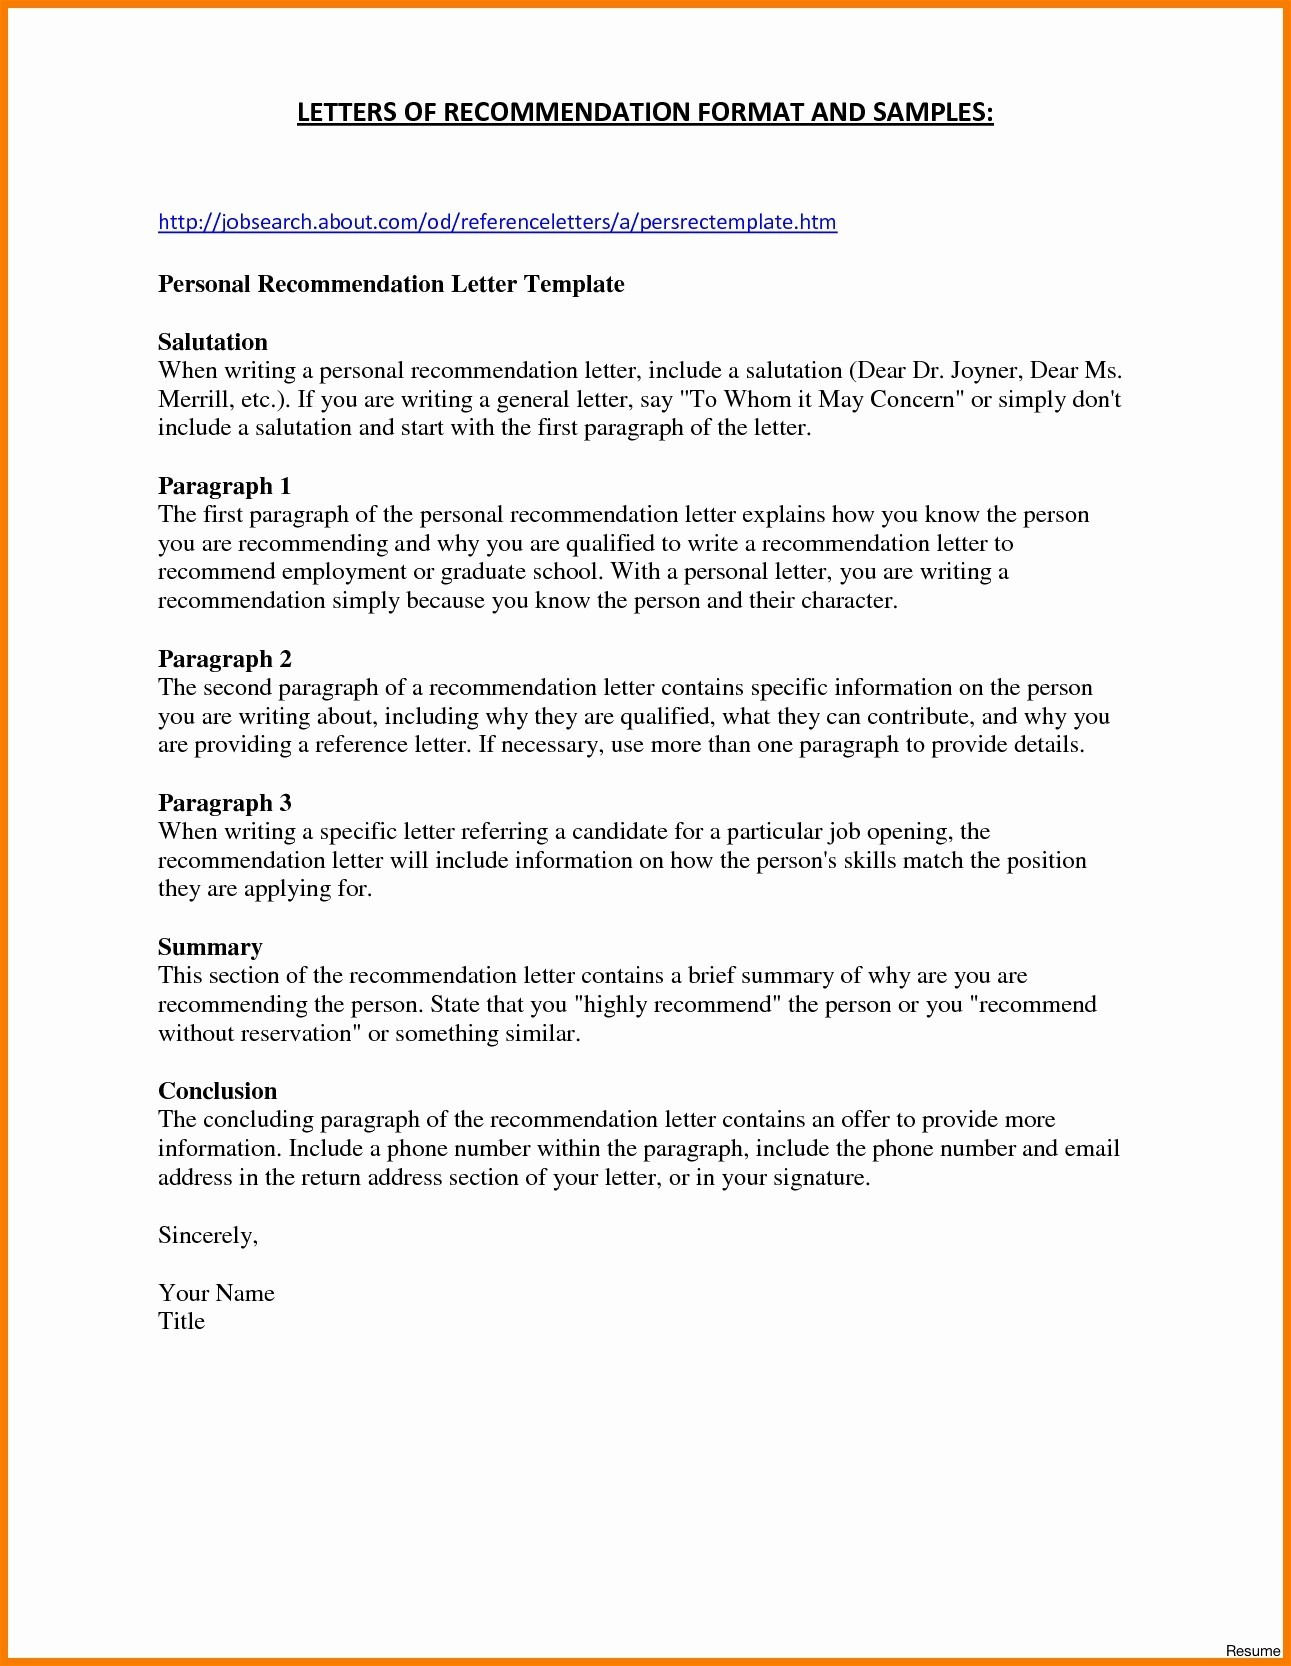 Caregiver Job Description for Resume - Caregiver Summary for Resume